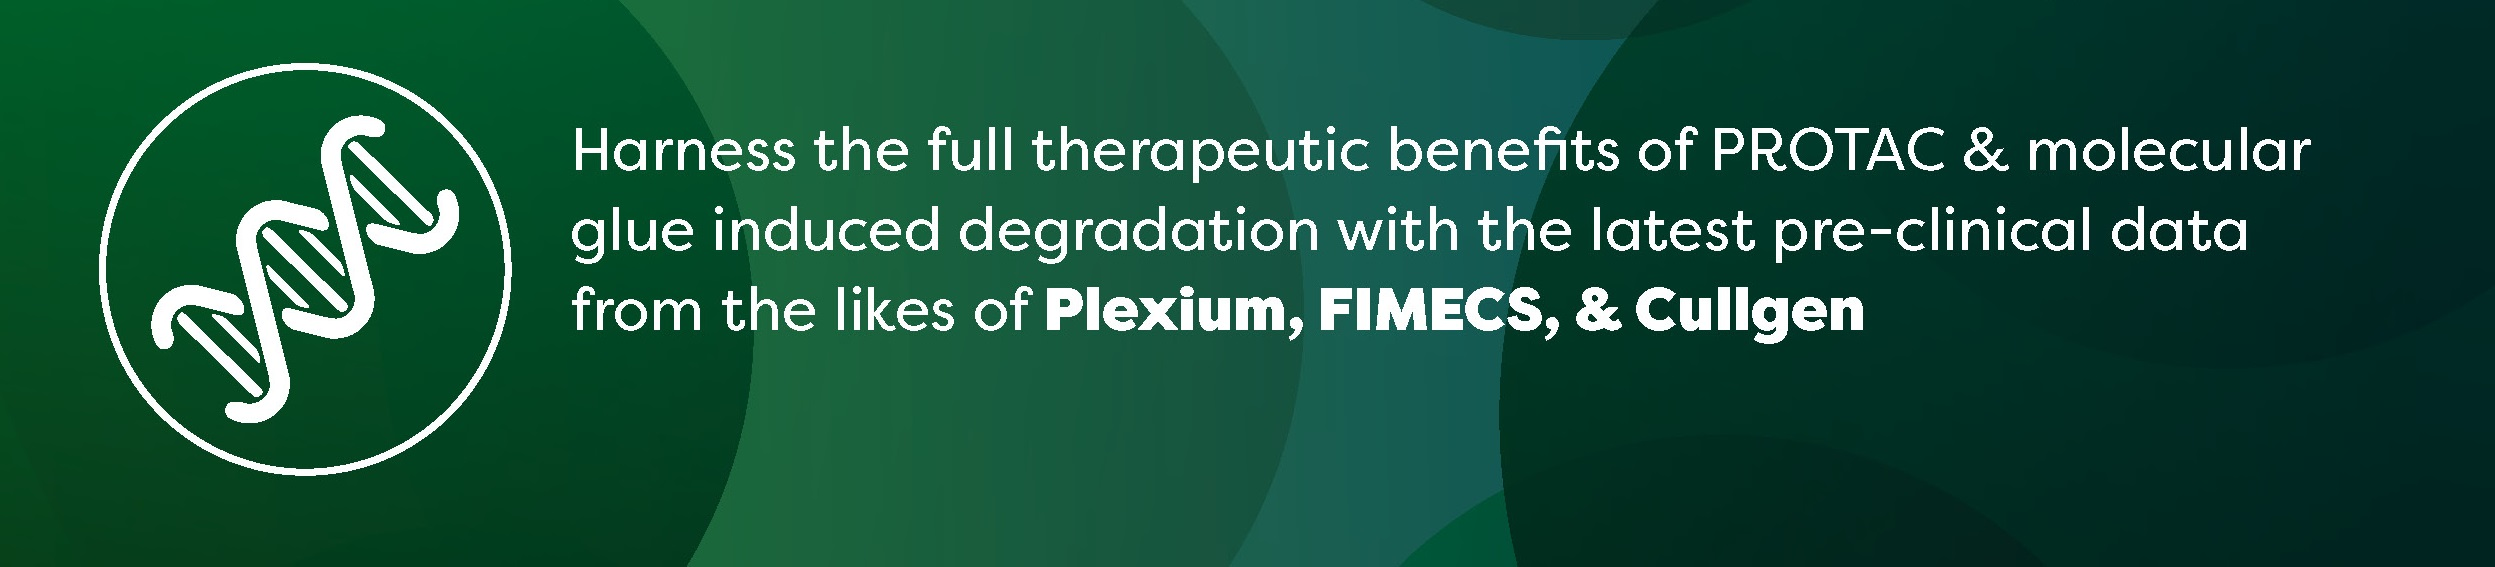 Harness the full therapeutic benefits of PROTAC & molecular glue induced degradation with the latest pre-clinical data from the likes of Plexium, FIMECS, & Cullgen